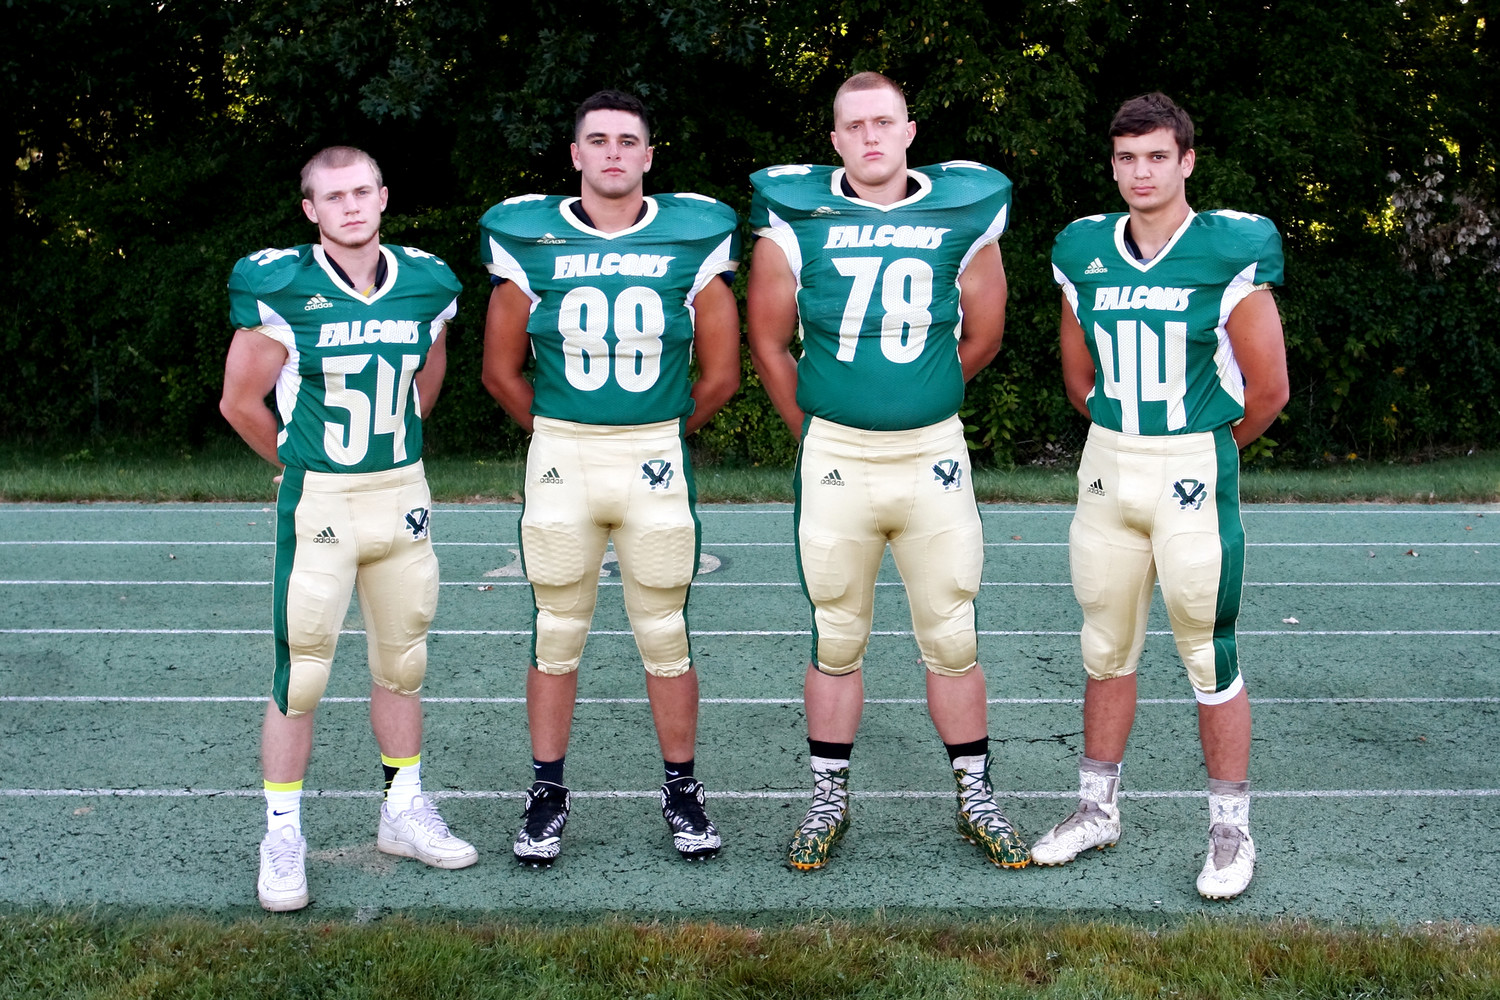 Team captains Dylan Iodice, Matt Moura, Mason Cardorette, and Chase Carroll